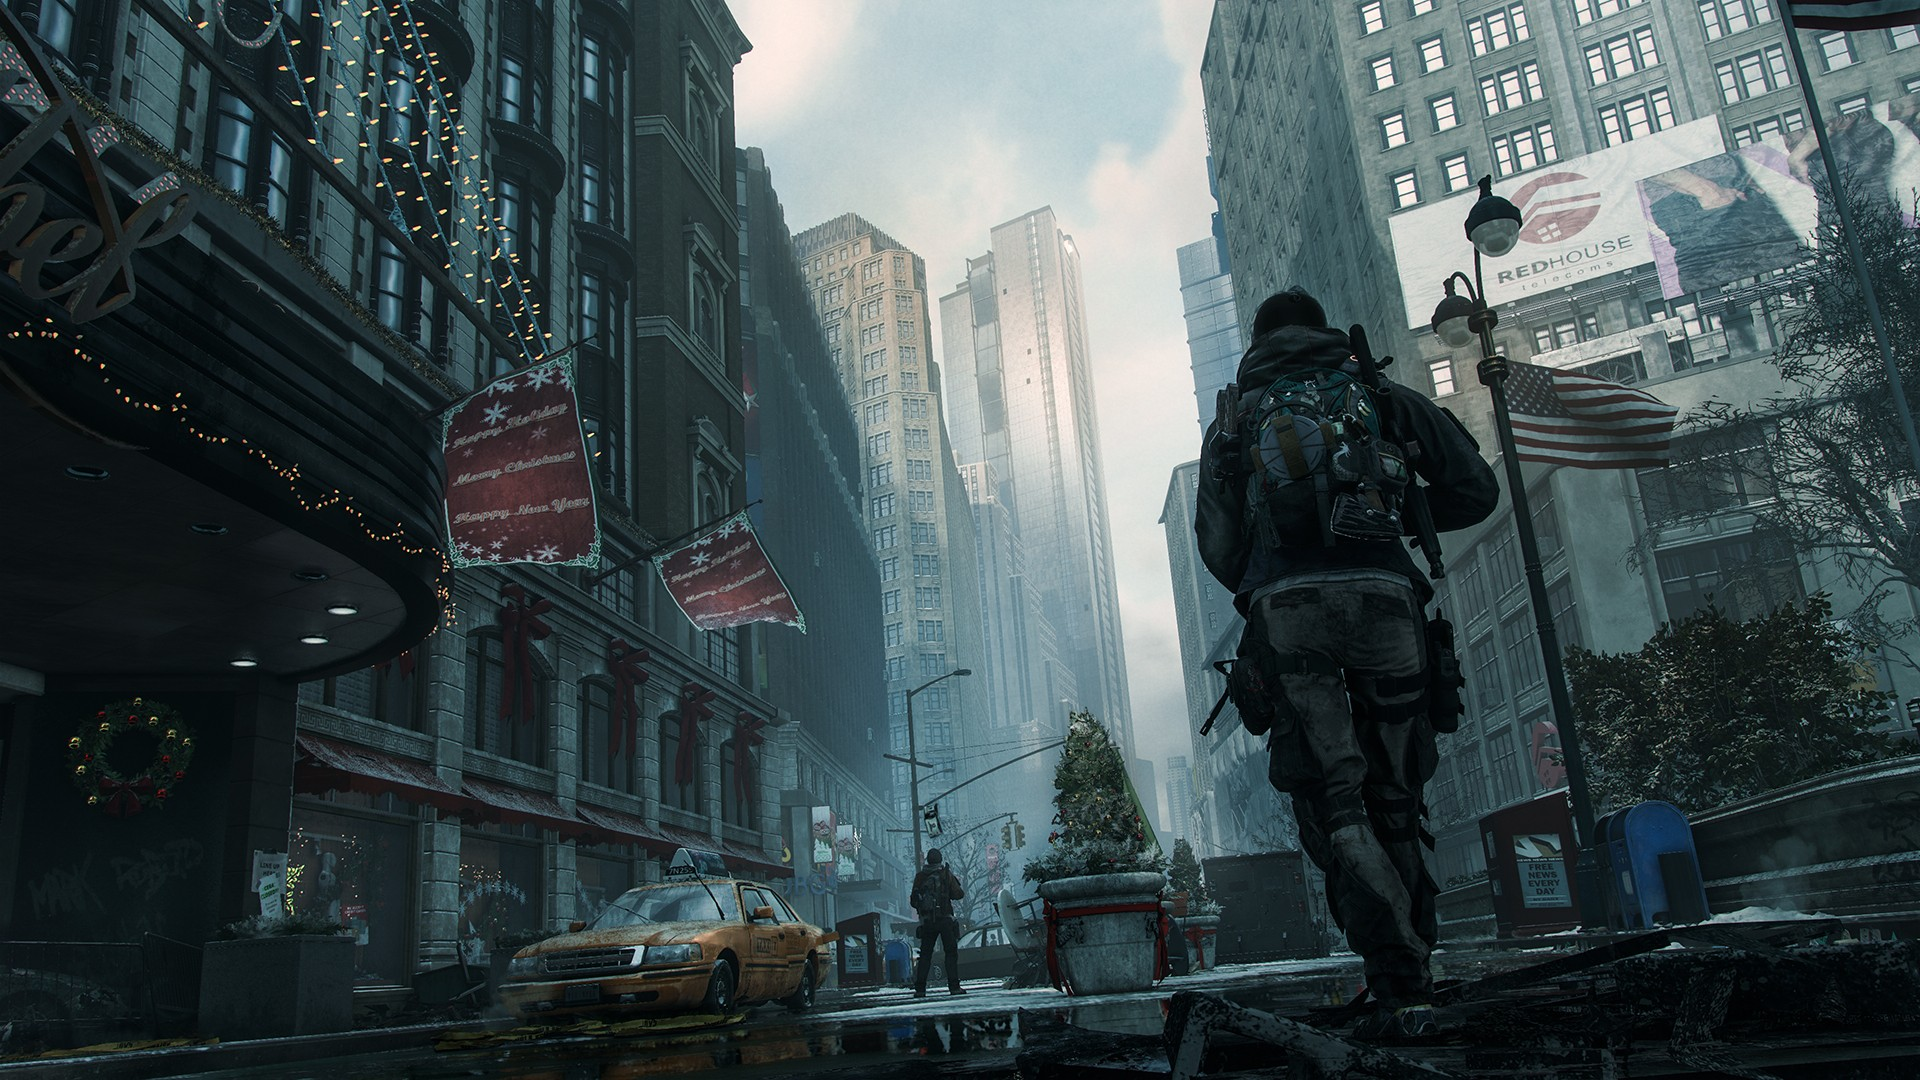 The Division wallpaper 1920x1080 ·① Download free beautiful